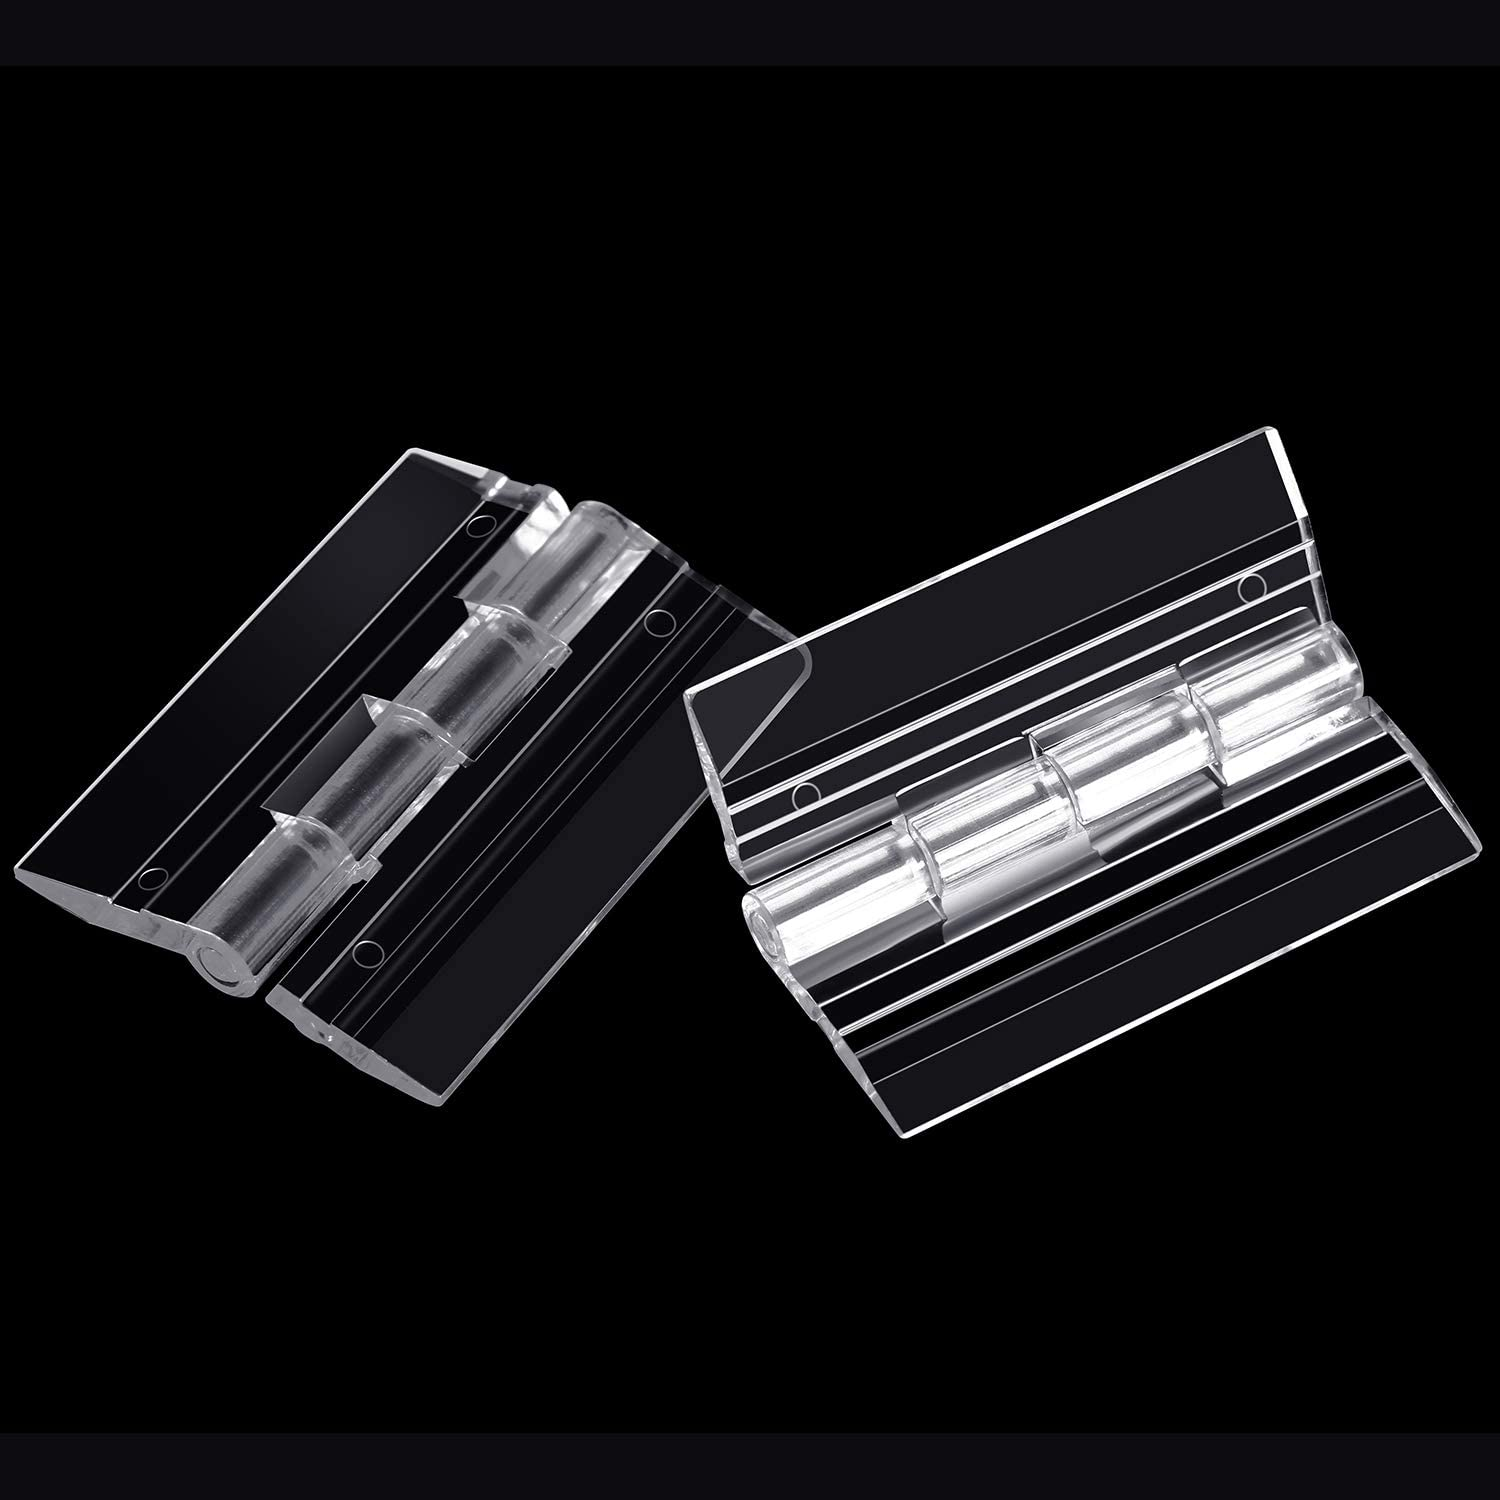 20 Pieces Acrylic Hinges Clear Acrylic Mini Hinge Transparent Plastic Folding Hinge Tools with Storage Box for Cabinet Drawer